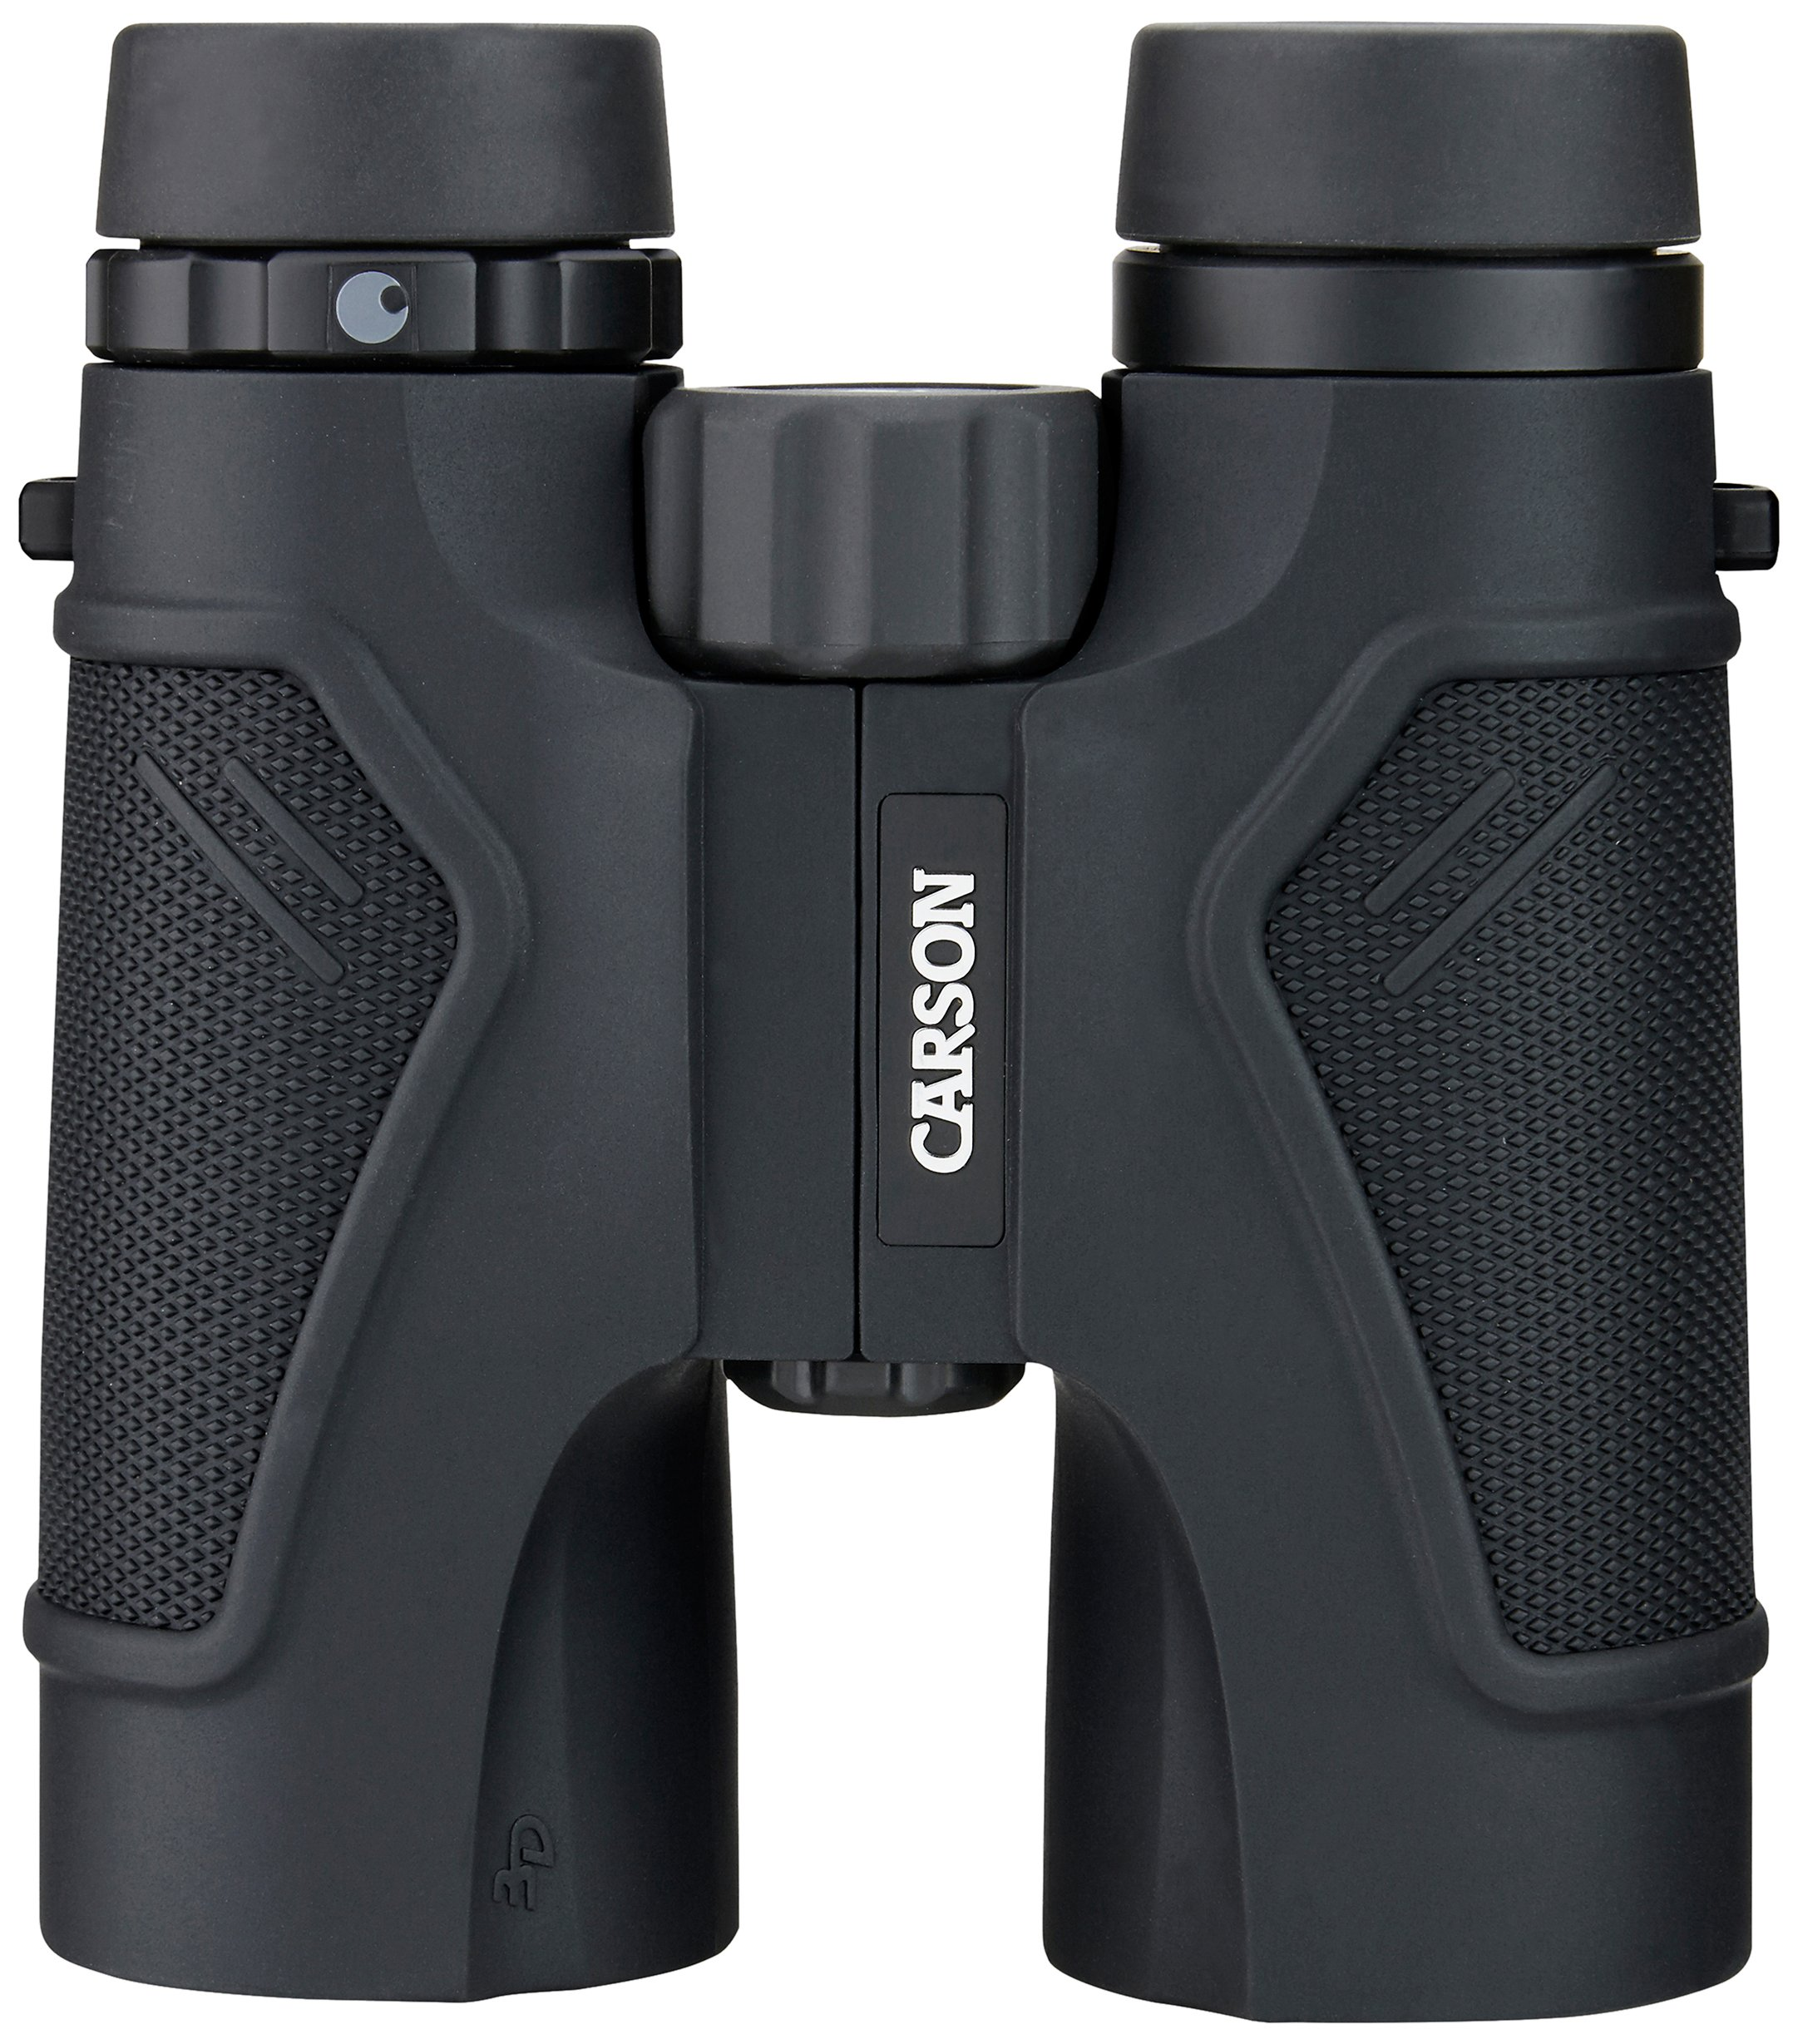 Carson 3D Series High Definition Binoculars with ED Glass, 10x42mm, Black by Carson